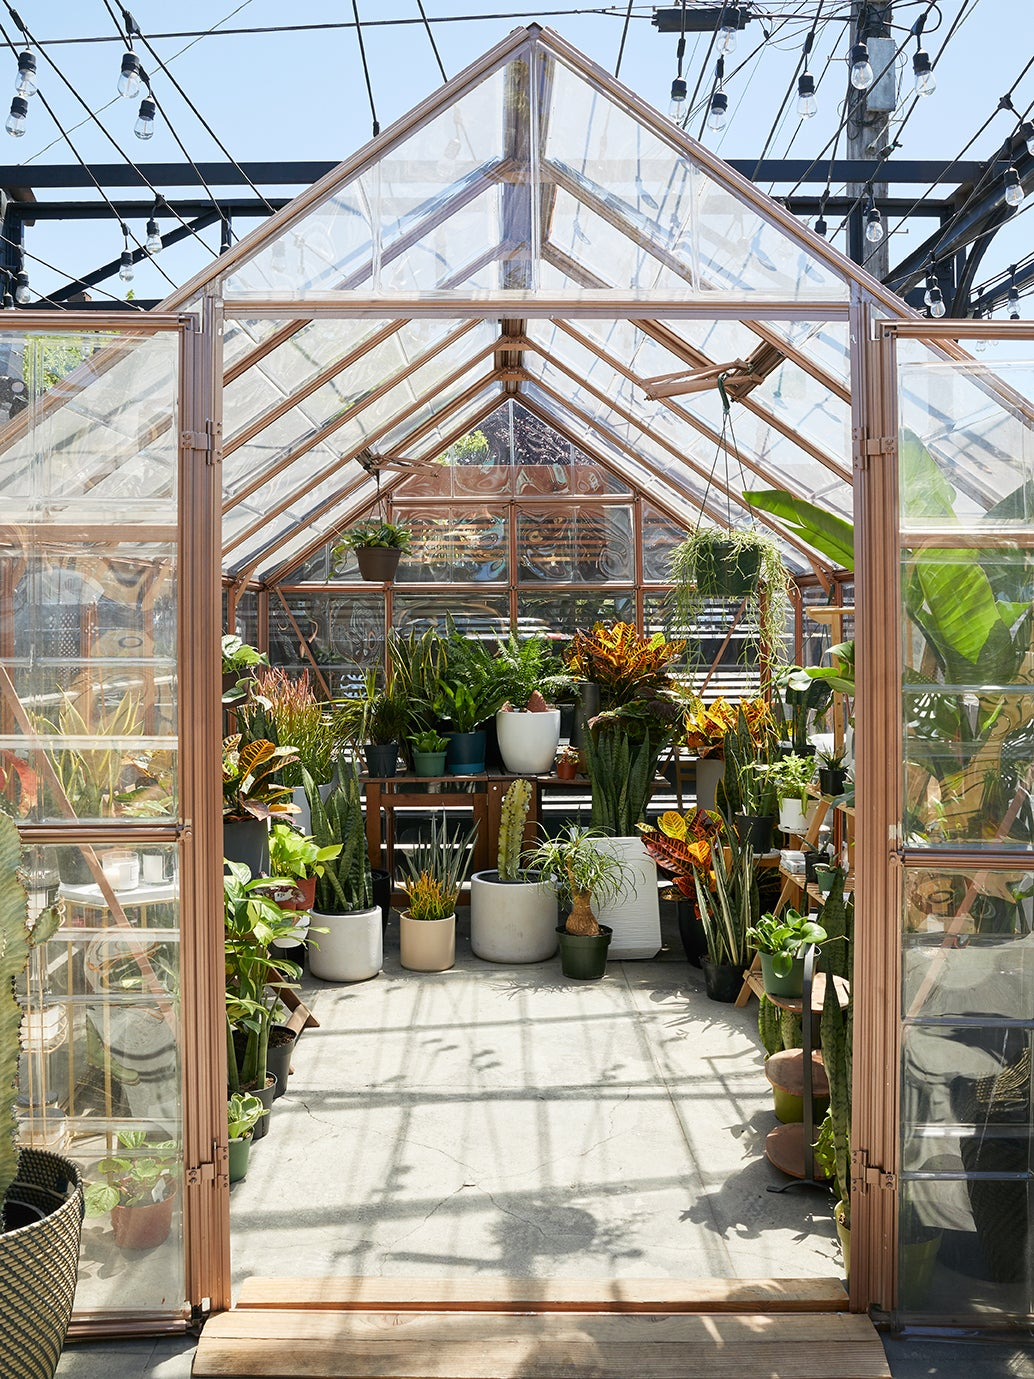 glass greenhouse filled with plants